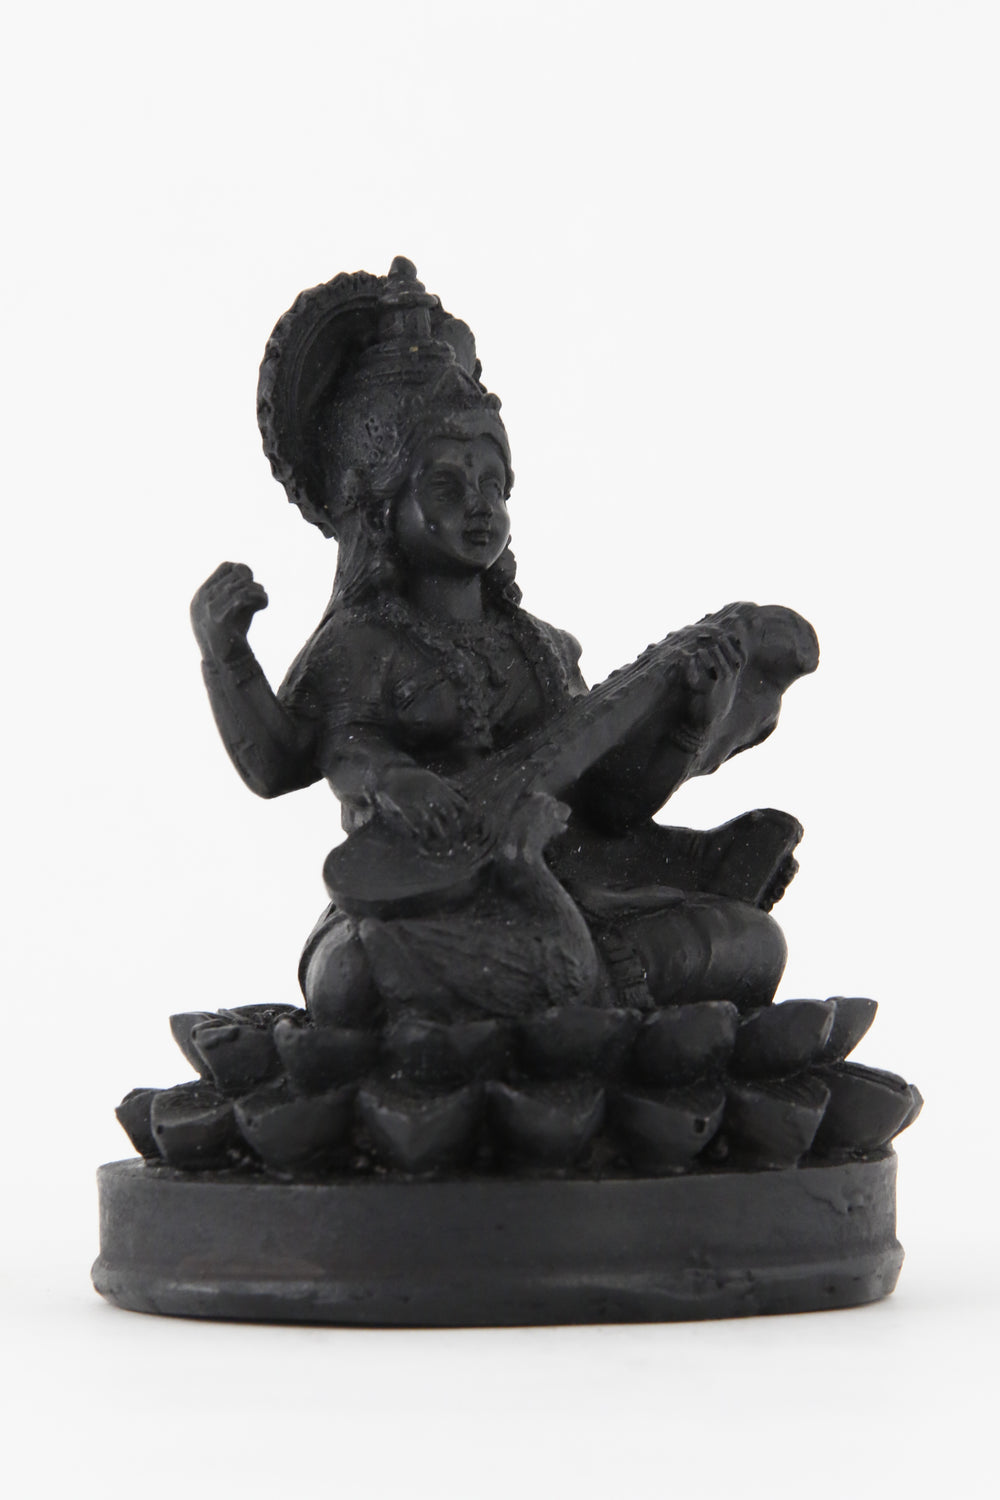 GODDESS SARASWATI STATUE DARK SMALL SIZE SIDE VIEW